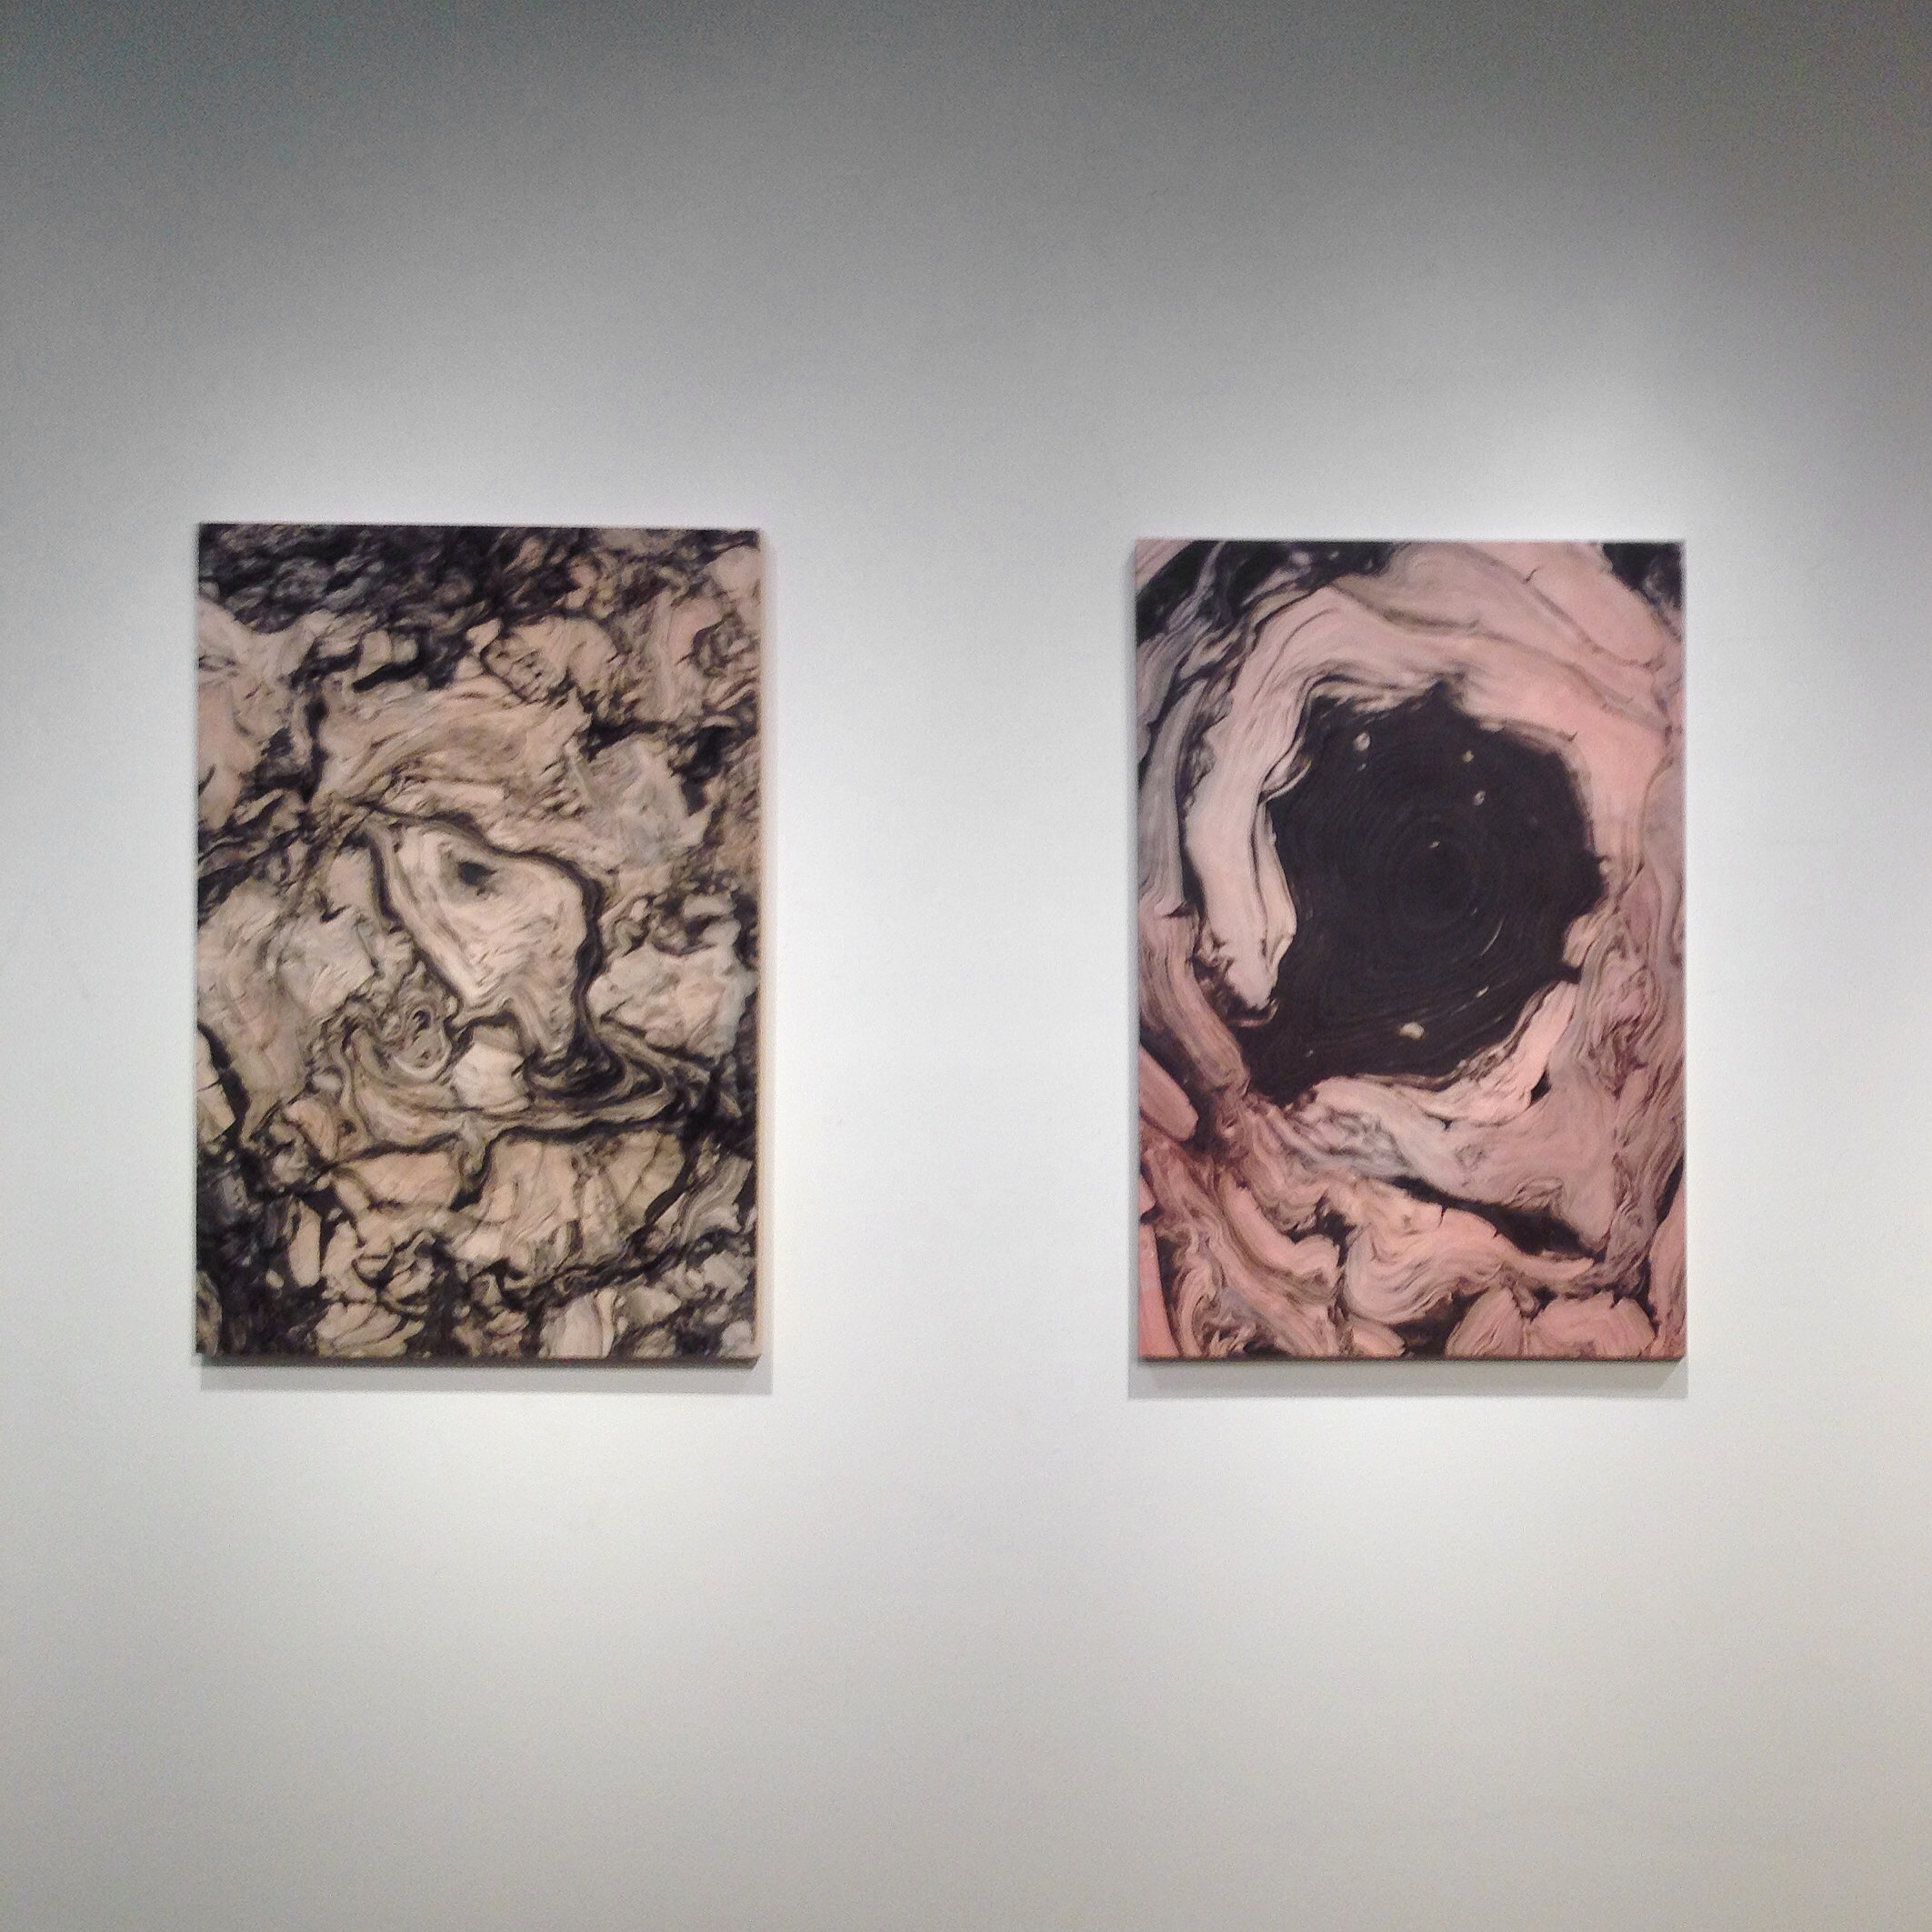 works on paper by natalie stopka